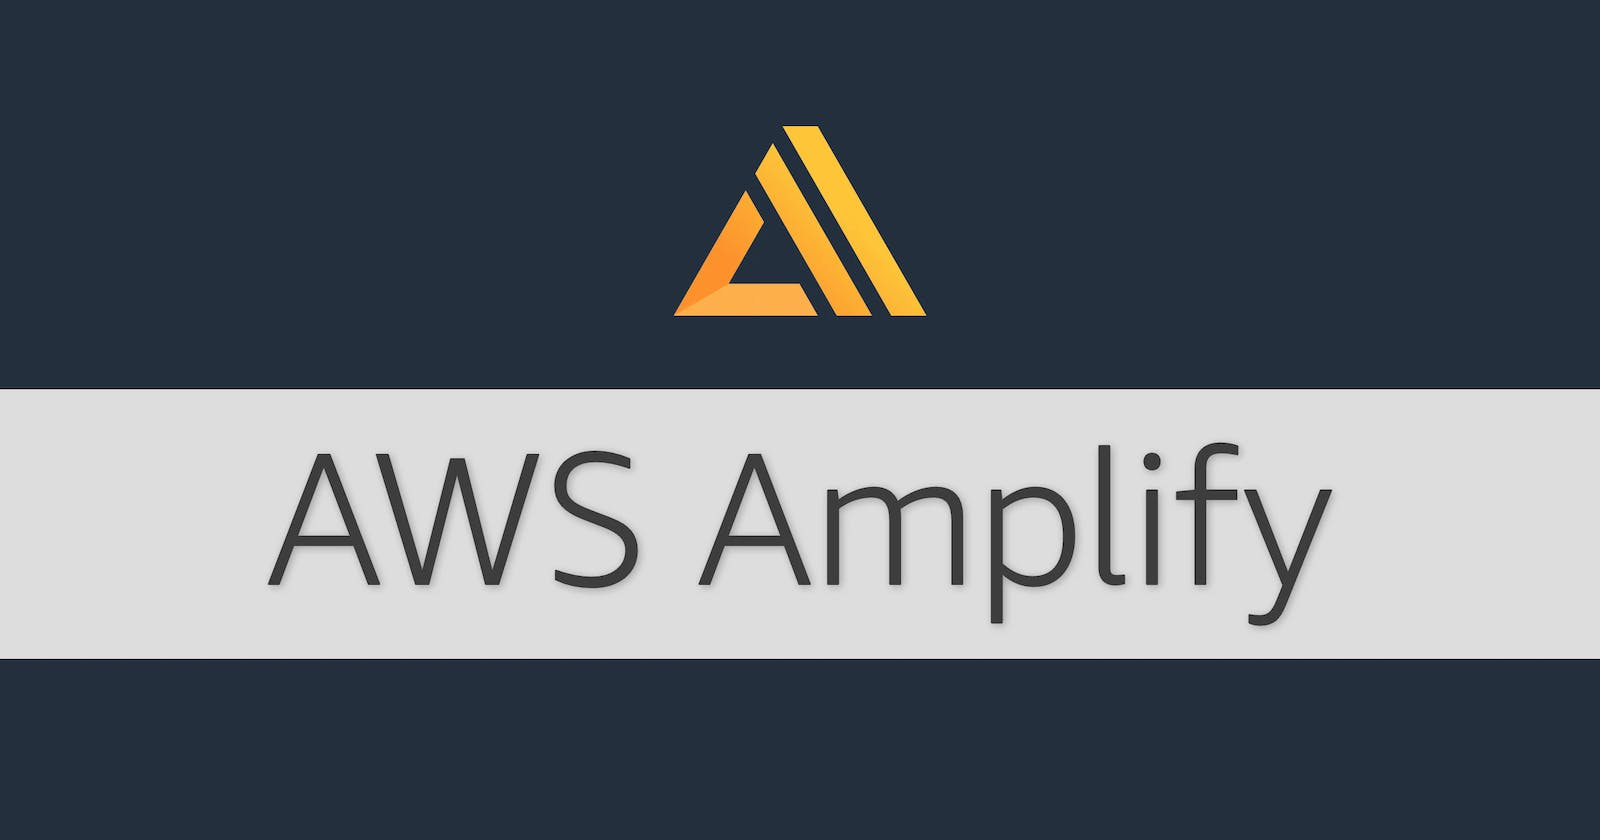 Getting Started with AWS Amplify. Building Auth and Rest APIs using Amplify and REACT.